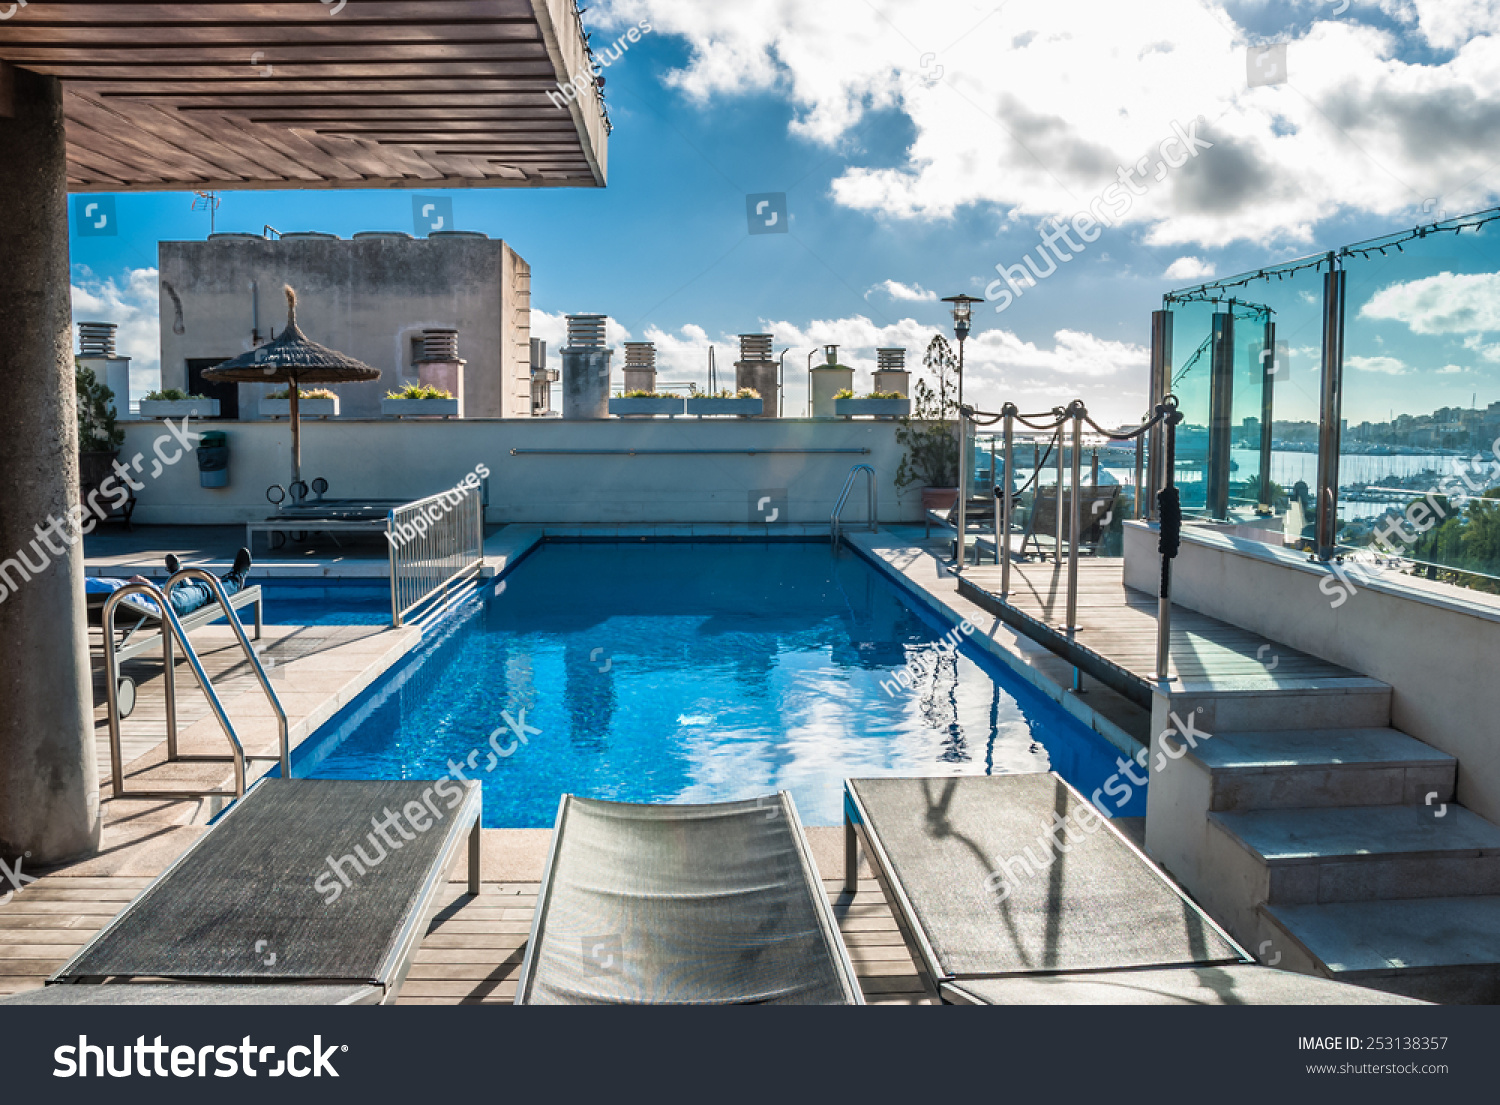 Architectural Swimming Pool At Building Rooftop In Palma De Majorca Tranquil Modern